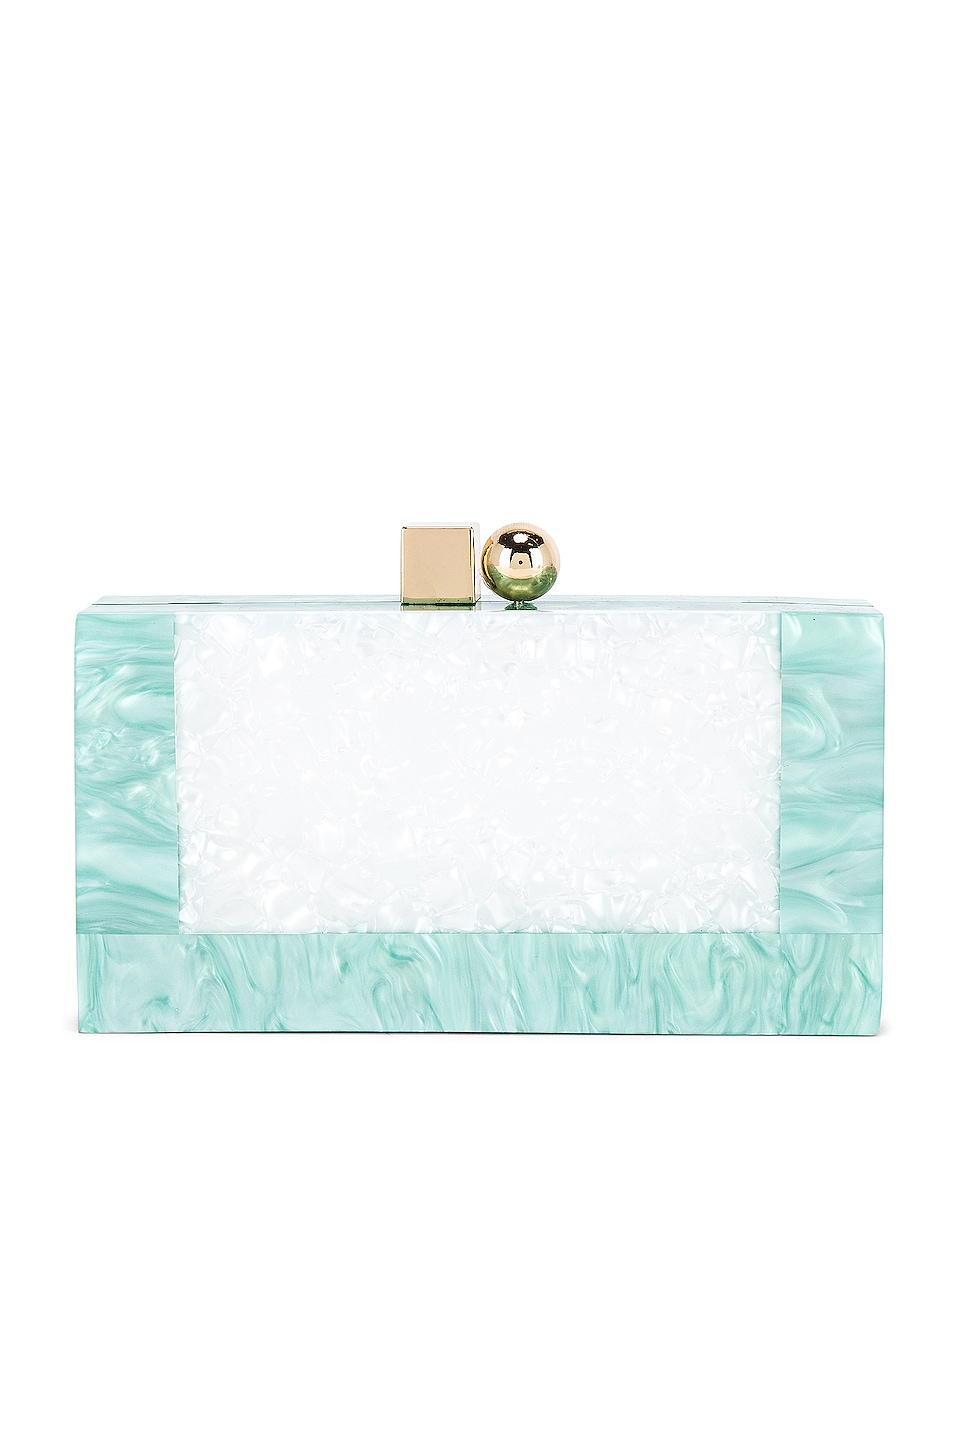 Amber Sceats Clutch in Blue